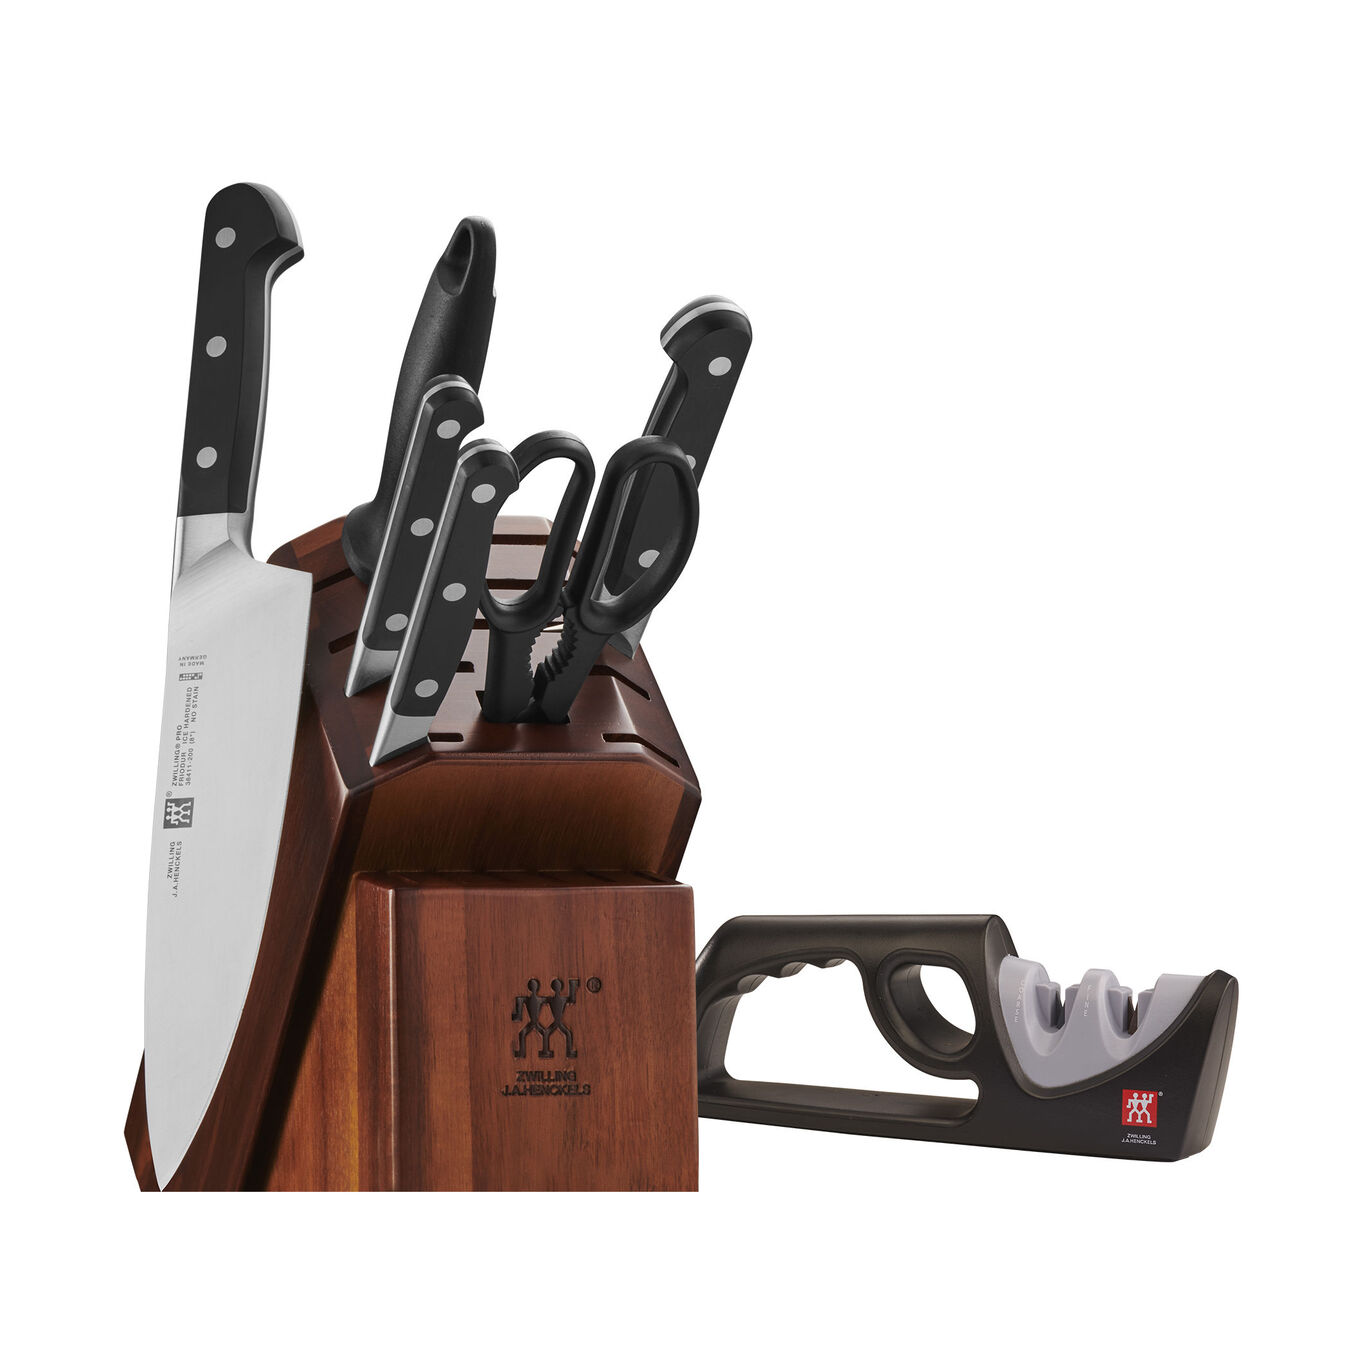 7-pc Knife Block Set with Bonus Sharpener,,large 1